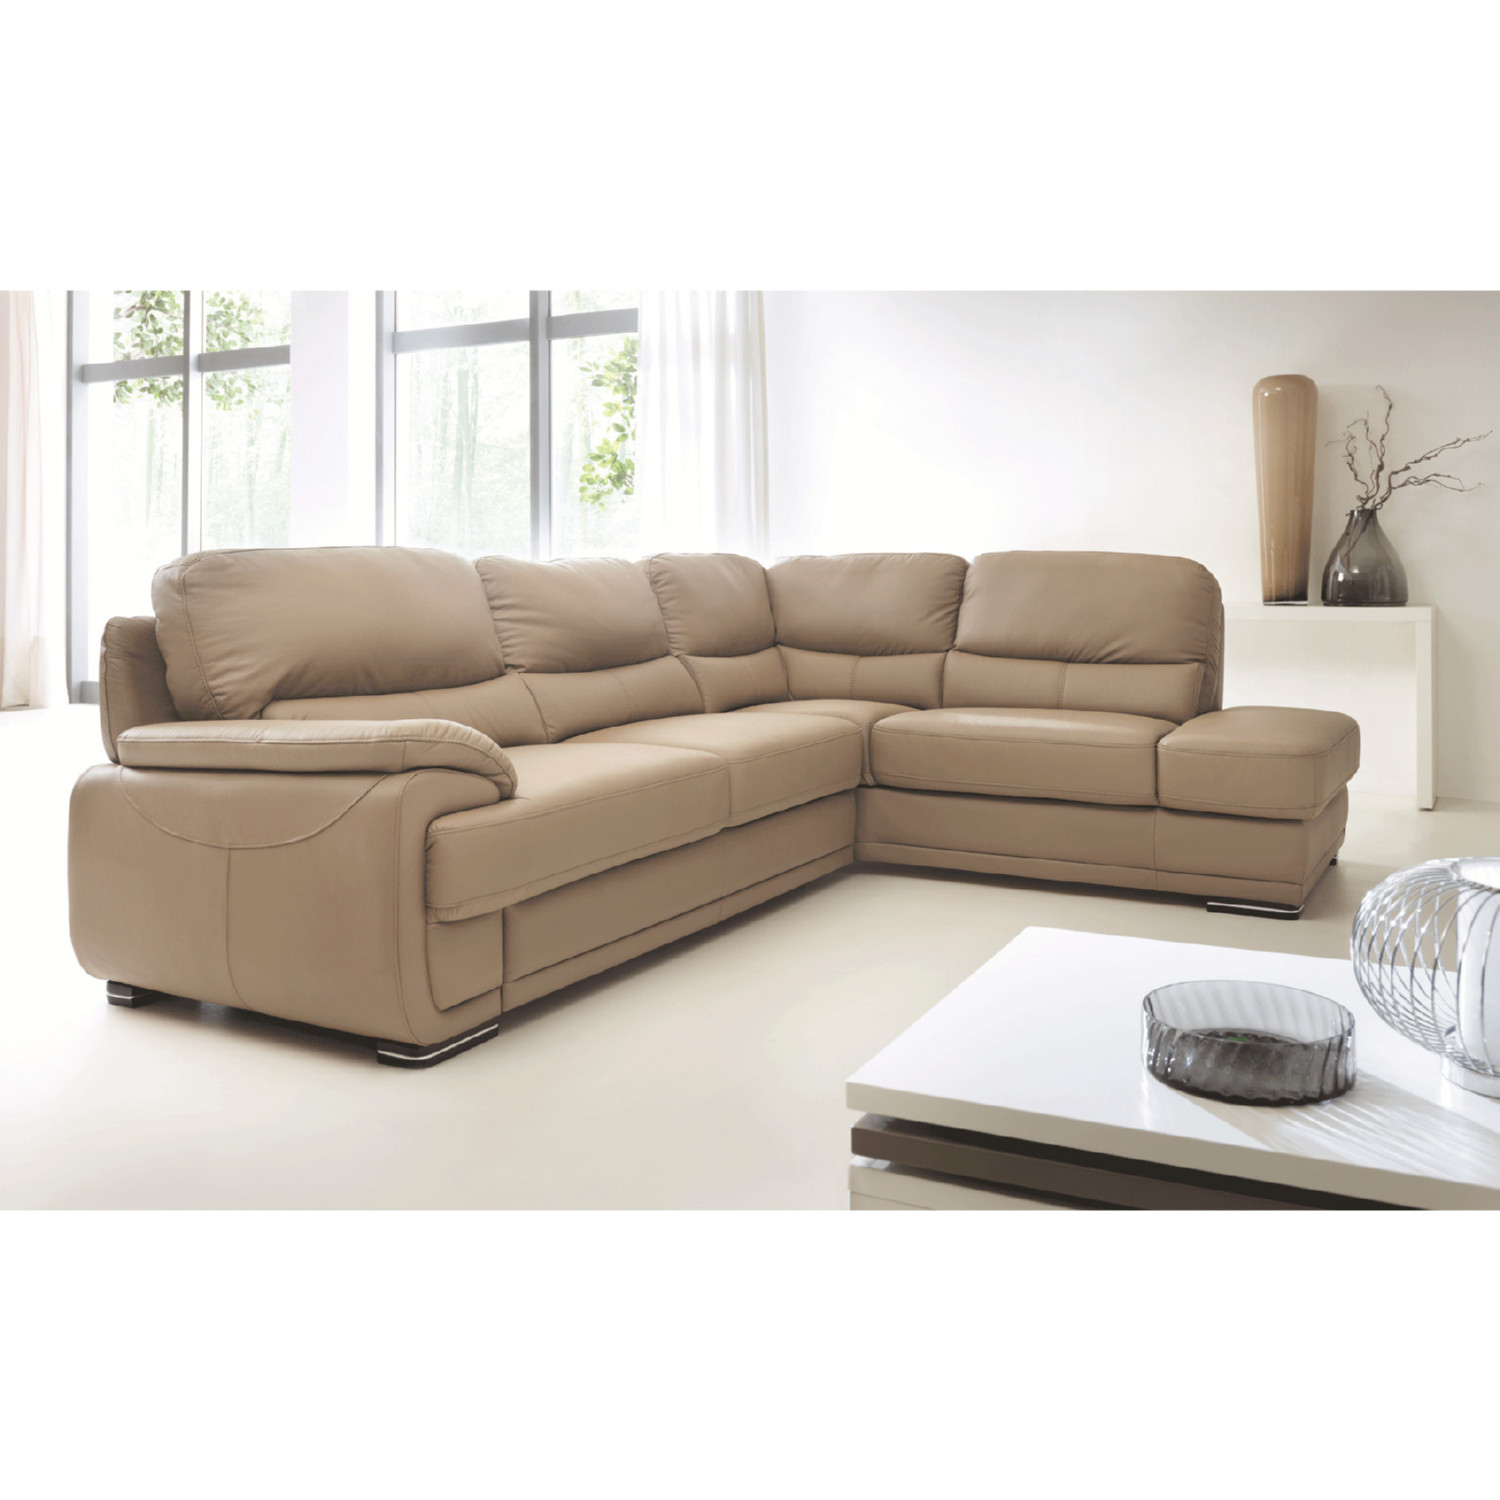 Esf Furniture Imports Argentosectionalrigh Argento Sectional Sofa W Bed Storage In Beige Leather